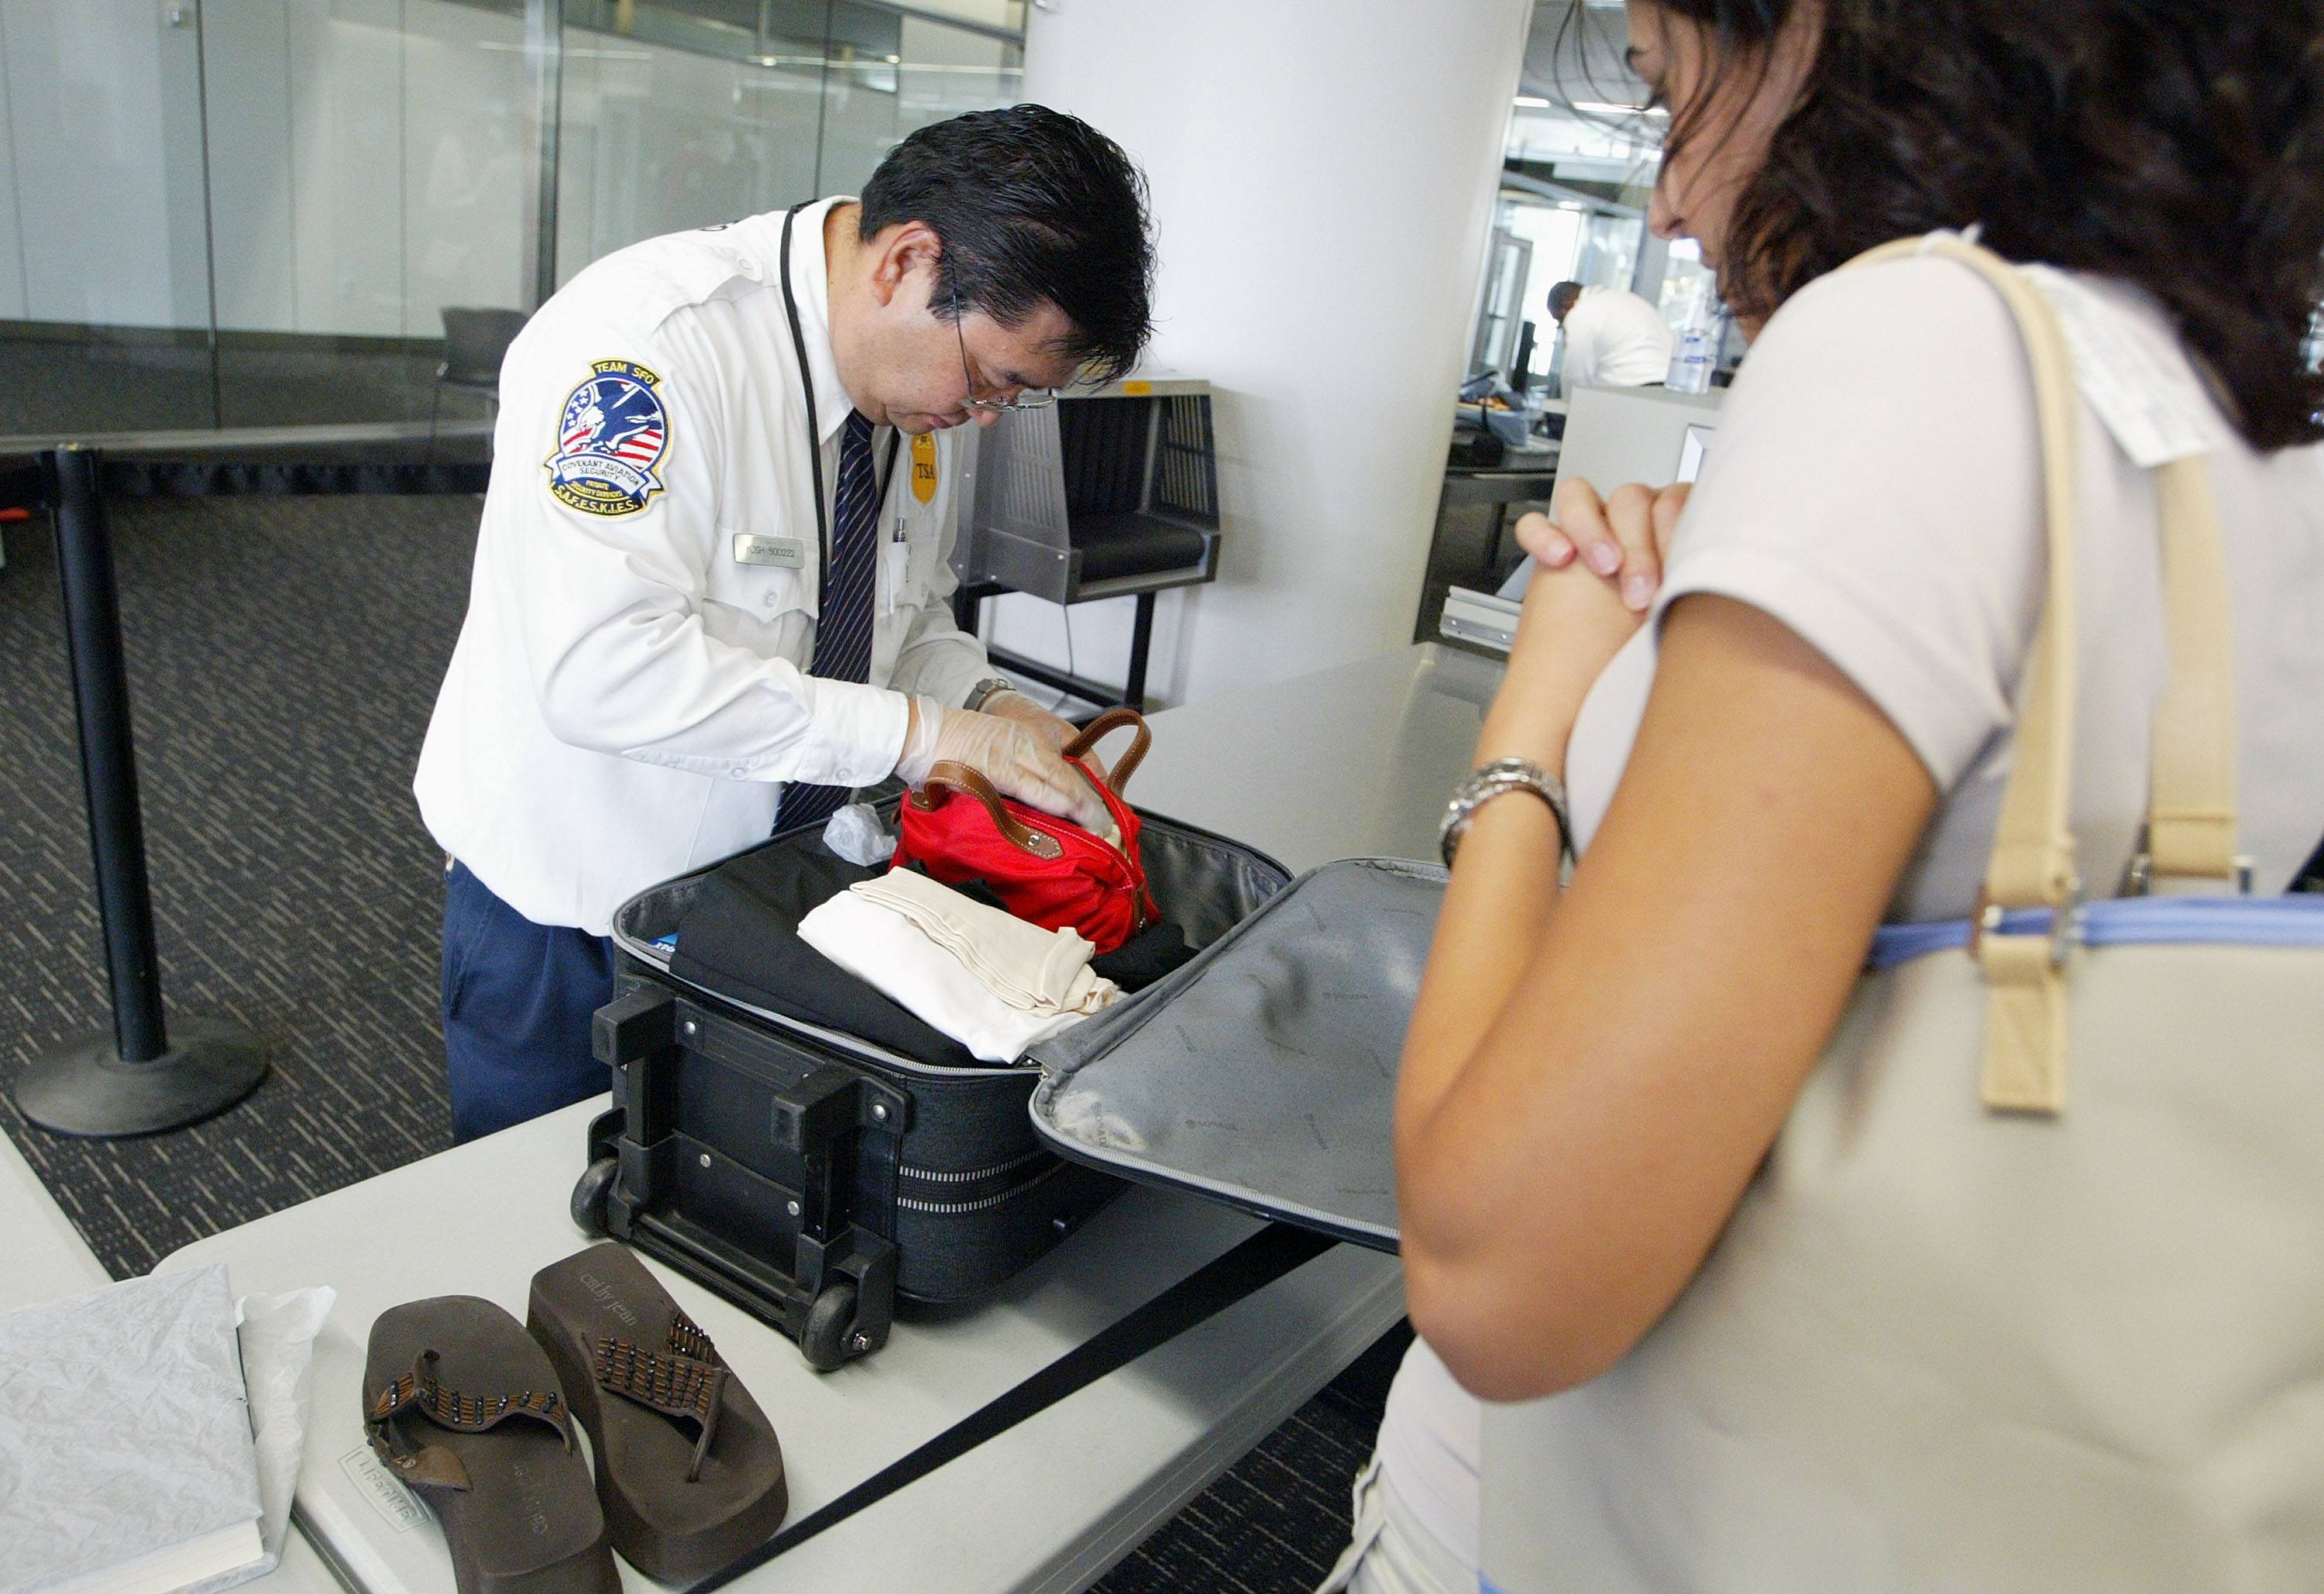 Airport security bag search by TSA agent